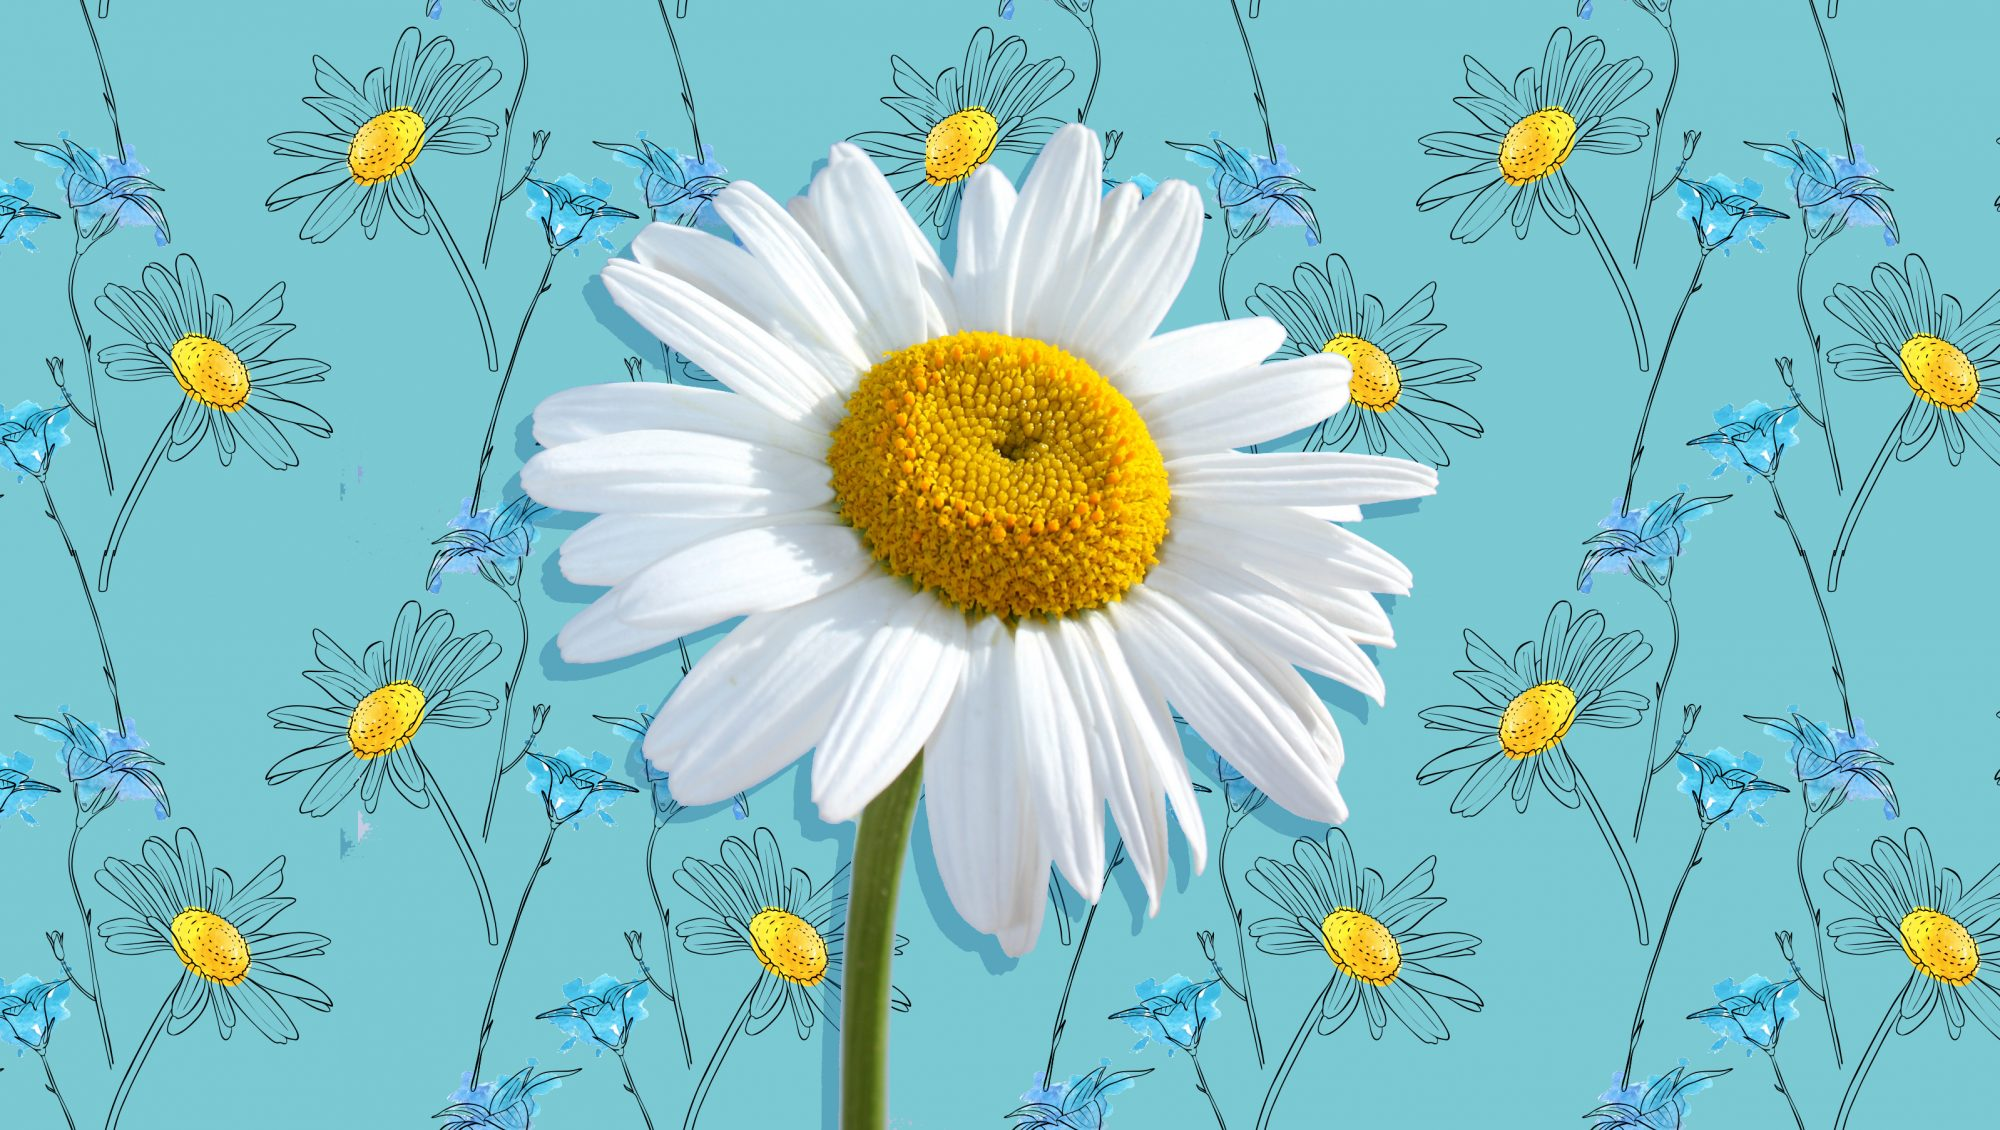 WATCH: Shasta Daisies Are the Most Cheerful Summer Flowers